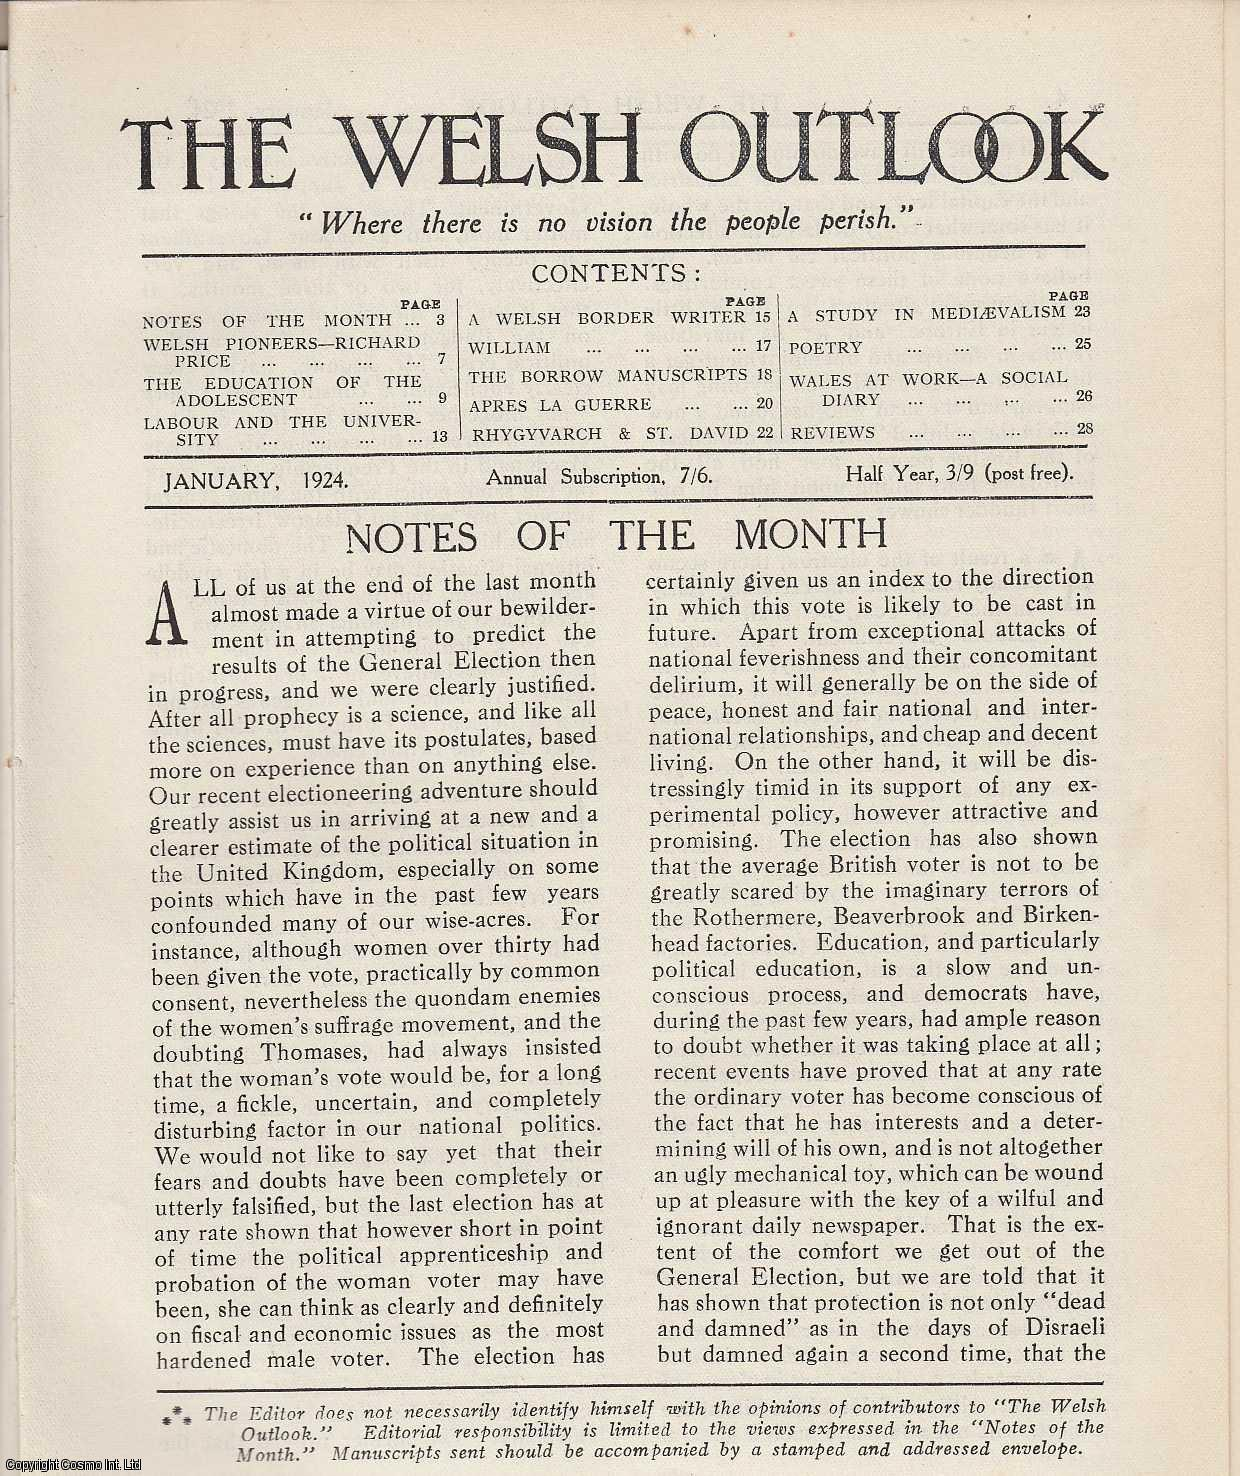 The Welsh Outlook. A Monthly Journal of National Social Progress. January, 1924. Contains; Richard Price by Roland Thomas; The Education of The Adolescent by Olive A. Wheeler; labour and The University by J.M. Williams; A Welsh Border Writer by Geoffrey H. Wells; The Borrow Manuscripts by Llewelyn C. Lloyd; Apres La Guerre; A Study in Mediaevalism: Social and Economic Affairs of The Lordship of Glamorgan by W. Tudor Davies; Wales at Work - A Social Diary., Thomas Jones (Editor)